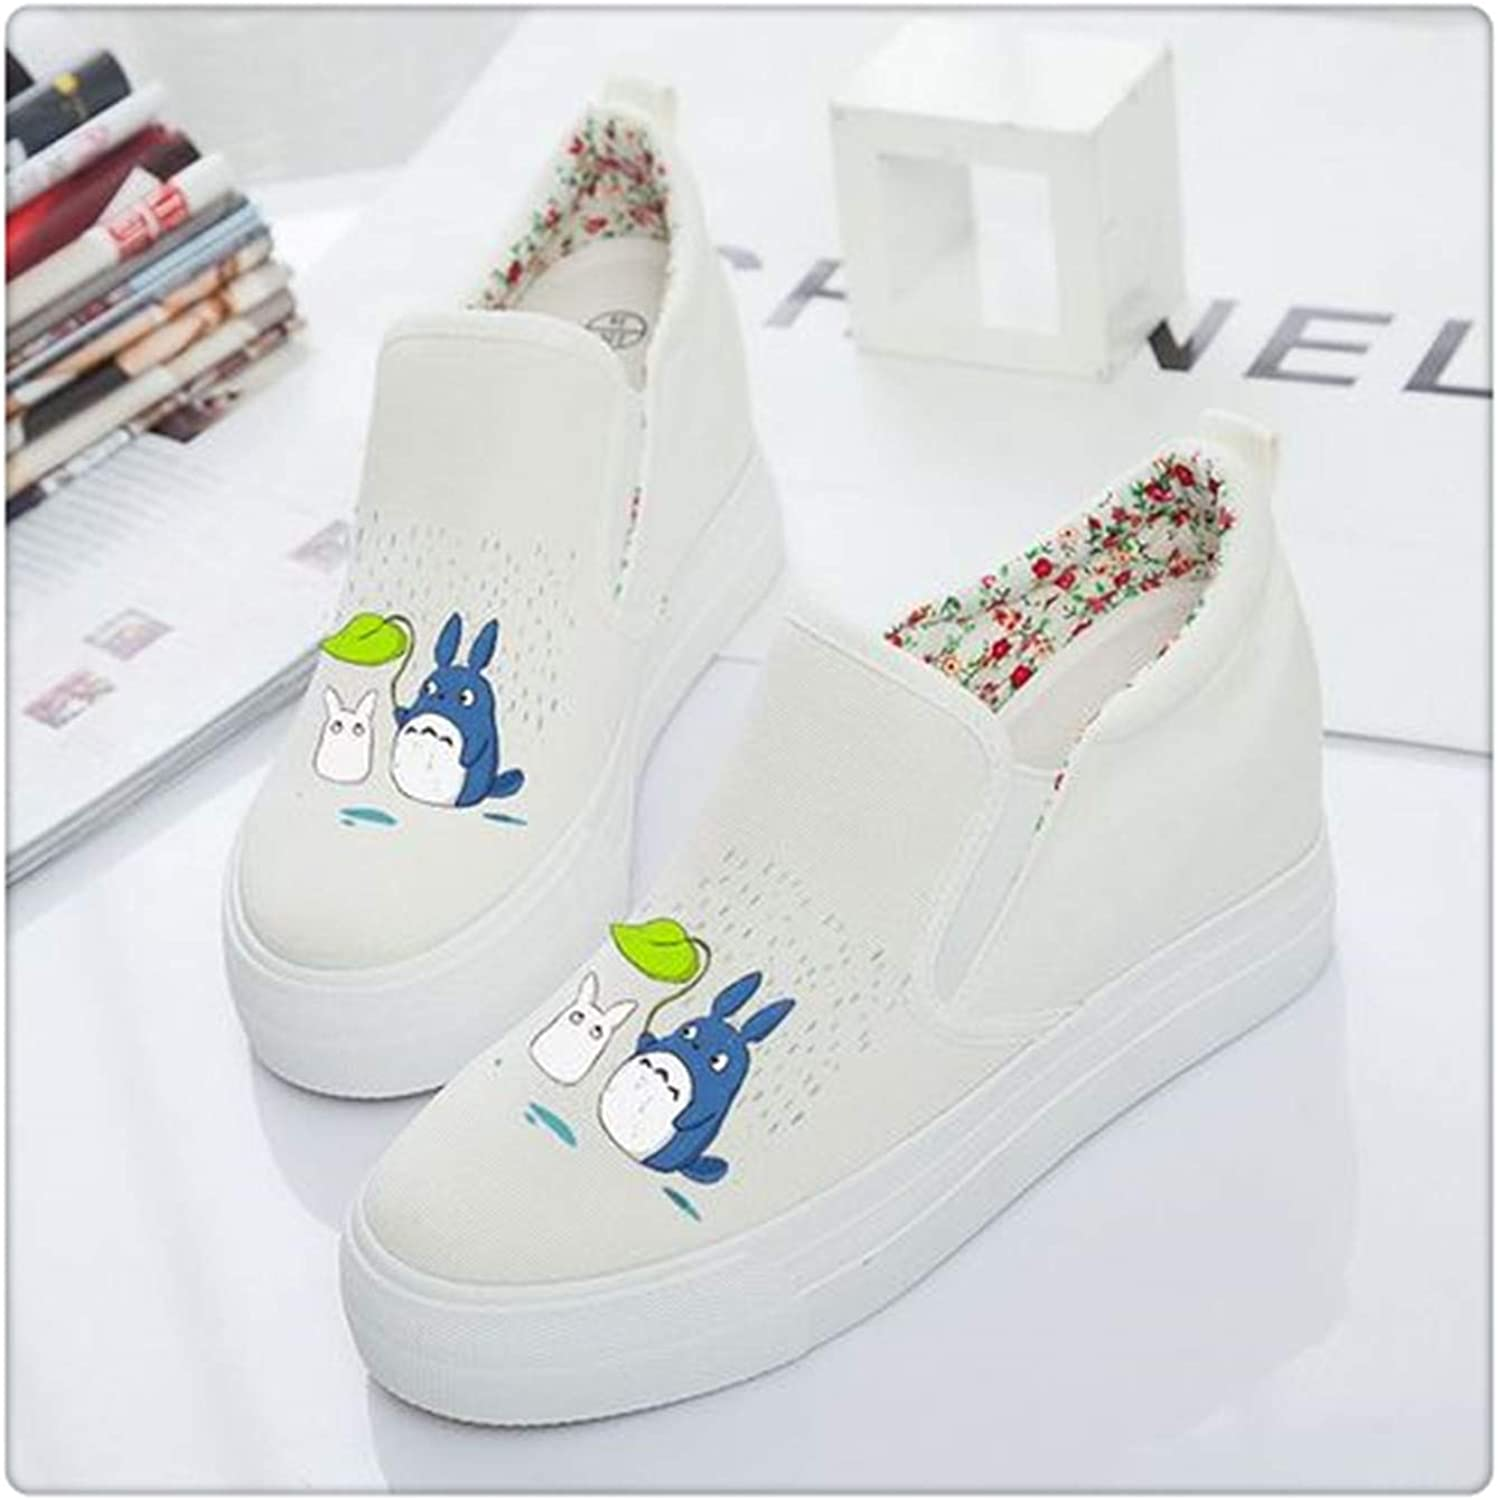 Sweet Women's shoes Platform 2019 Autumn Slip on Canvas shoes Women Loafers Casual Espadrilles White Black Creepers White cat Rainy 4